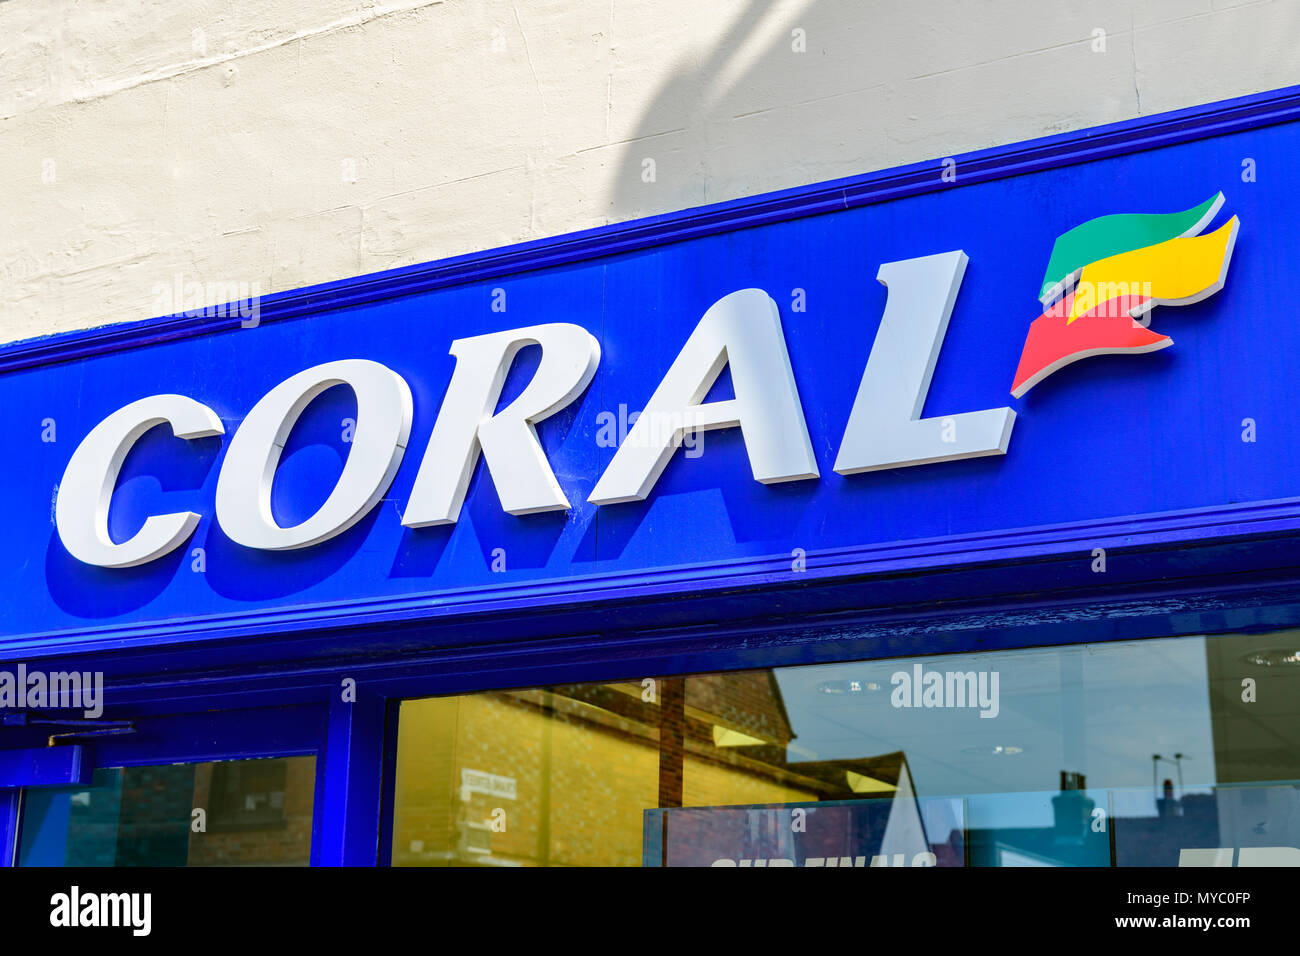 Coral bookmakers shop sign - Stock Image